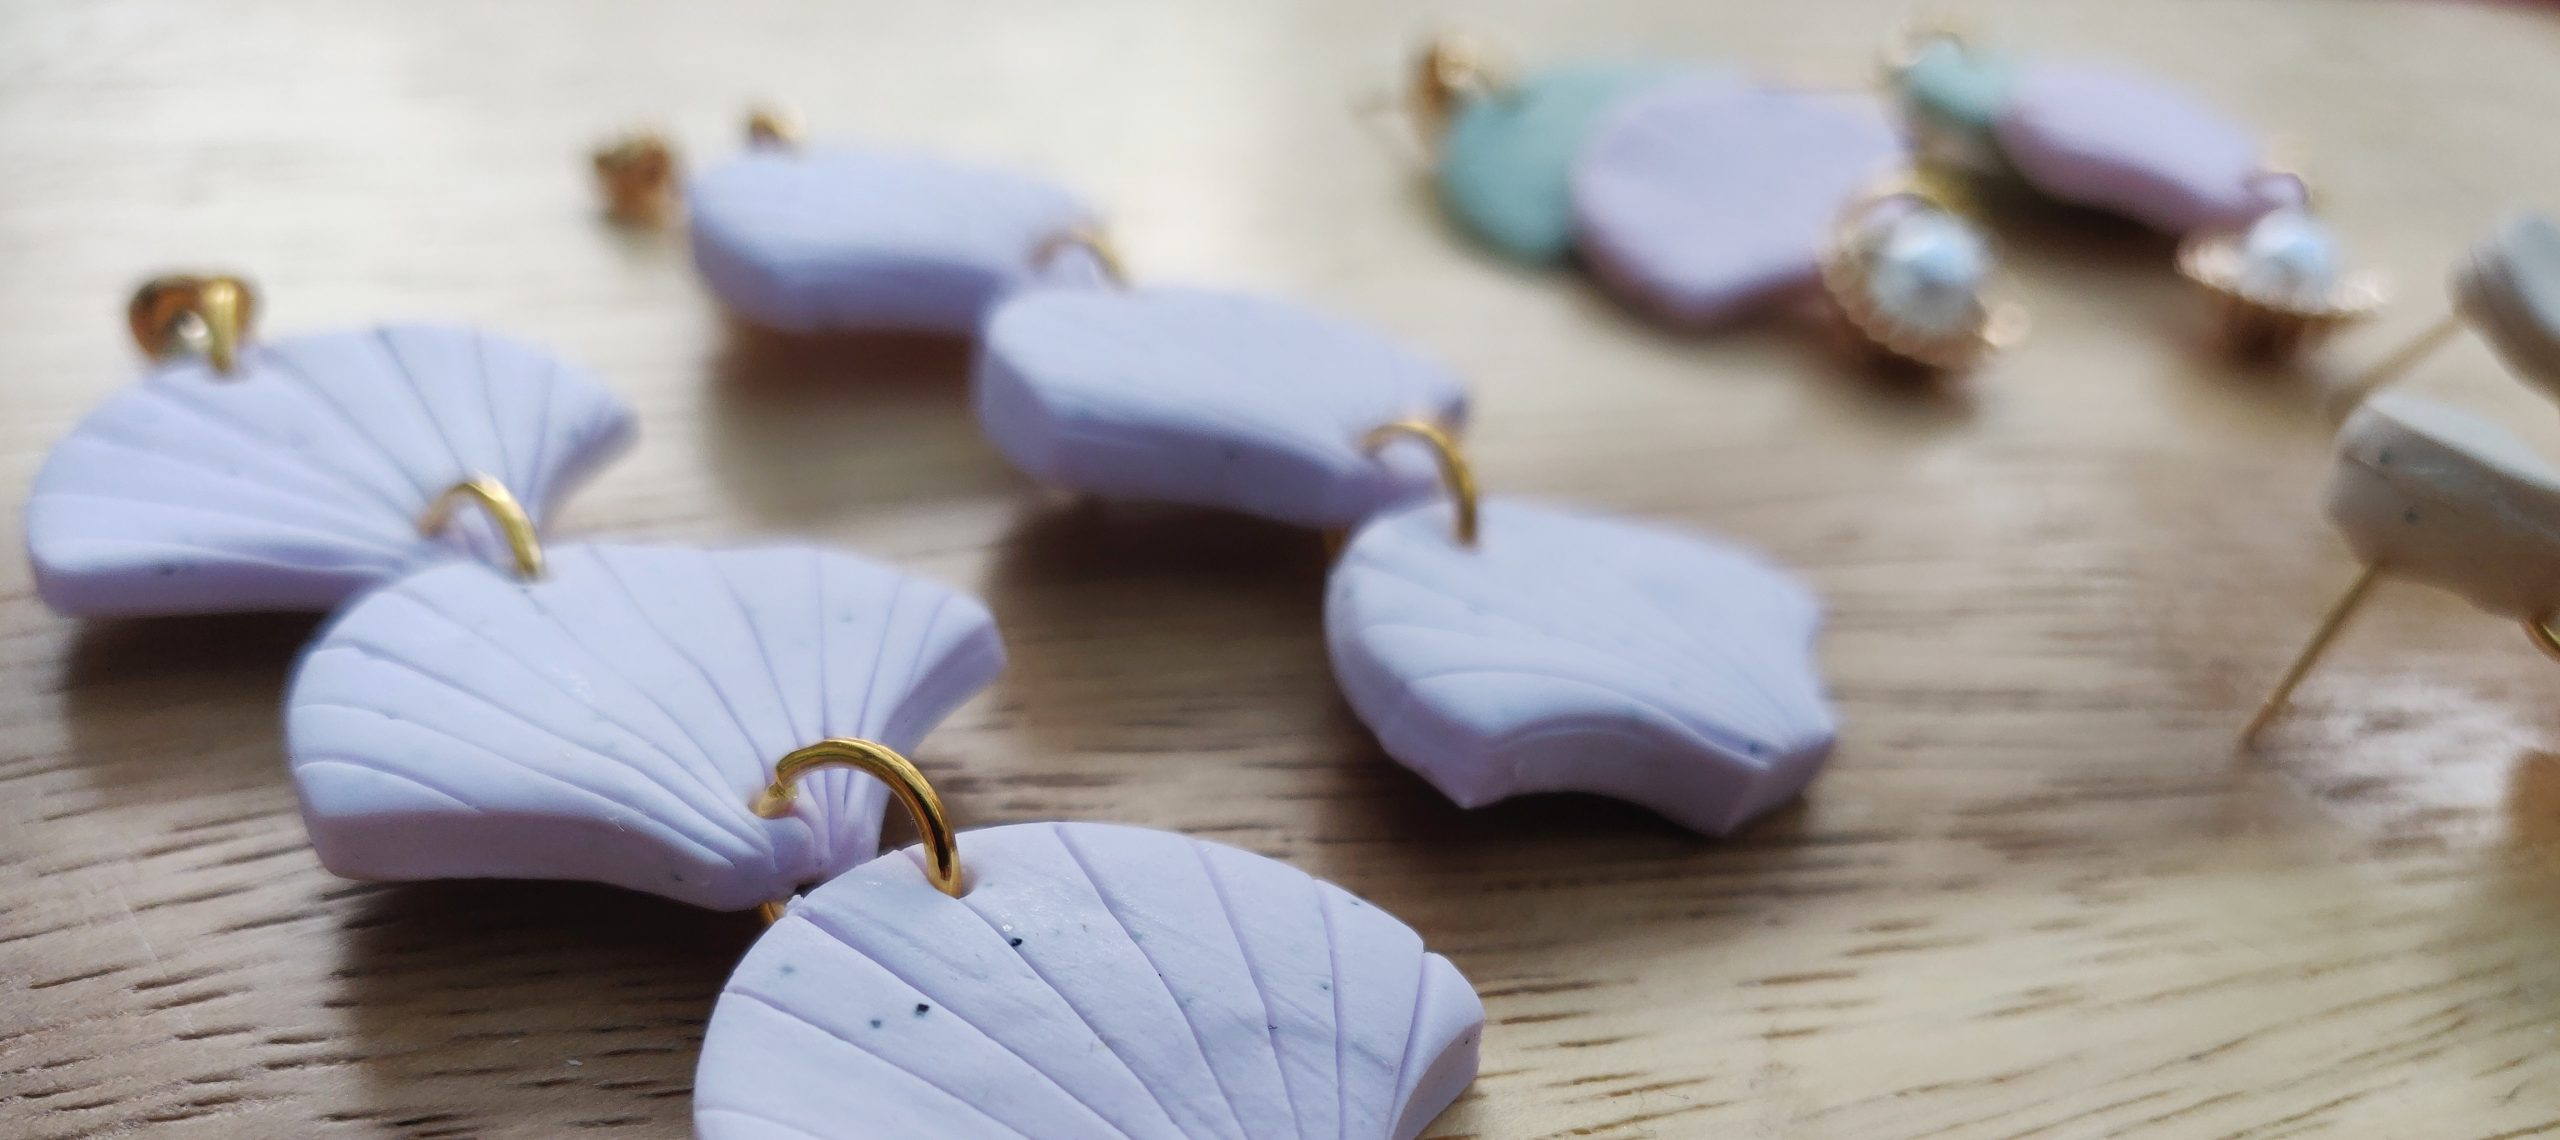 Polymer Clay Earrings handmade in Oxfordshire